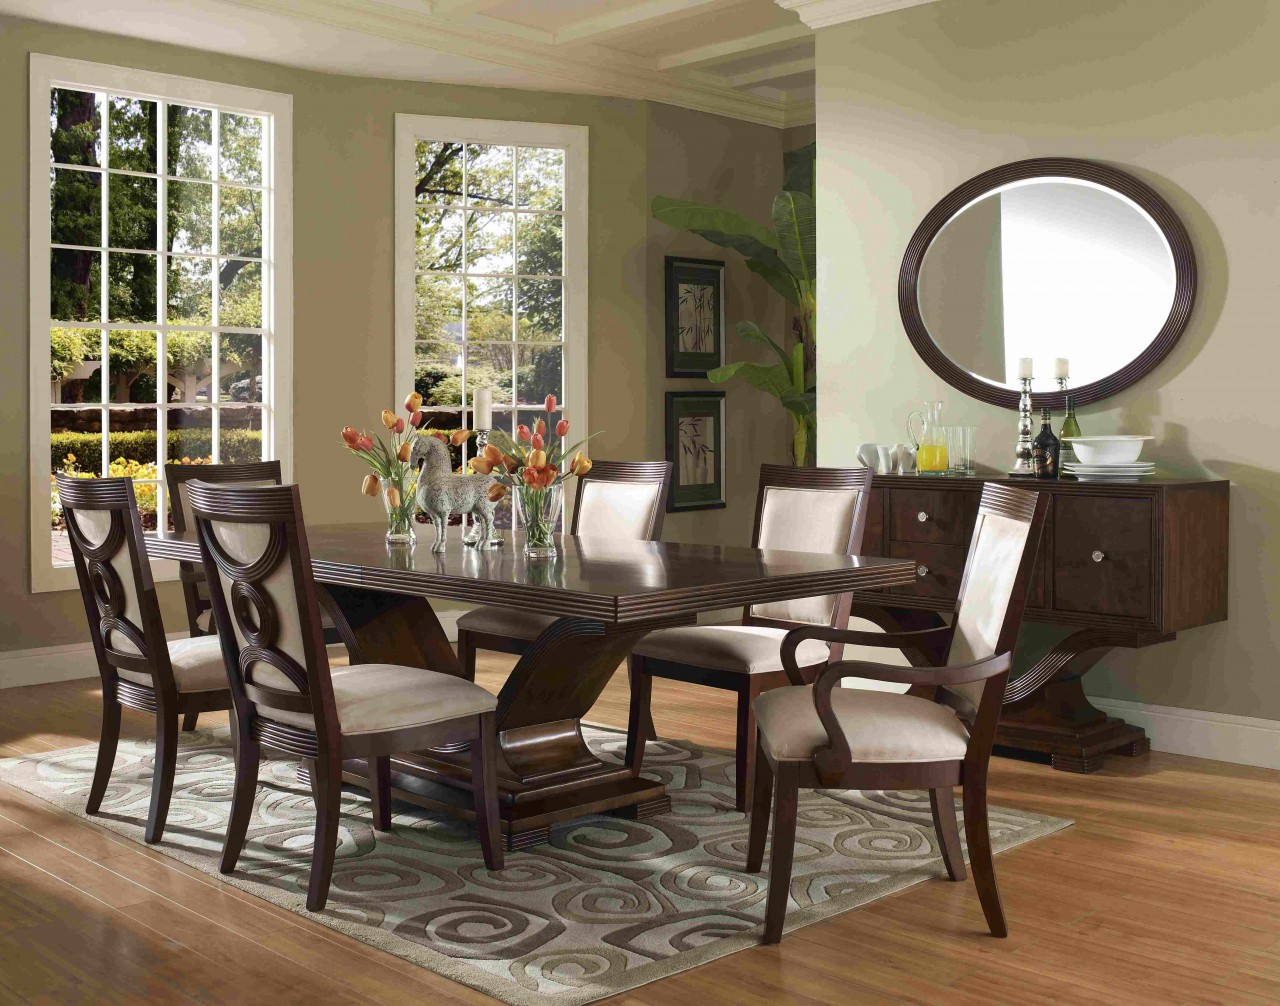 Dining Set Formal Dining Room Sets For Elegant Dining Room Design with regard to 11 Awesome Initiatives of How to Upgrade Formal Living Room Sets For Sale